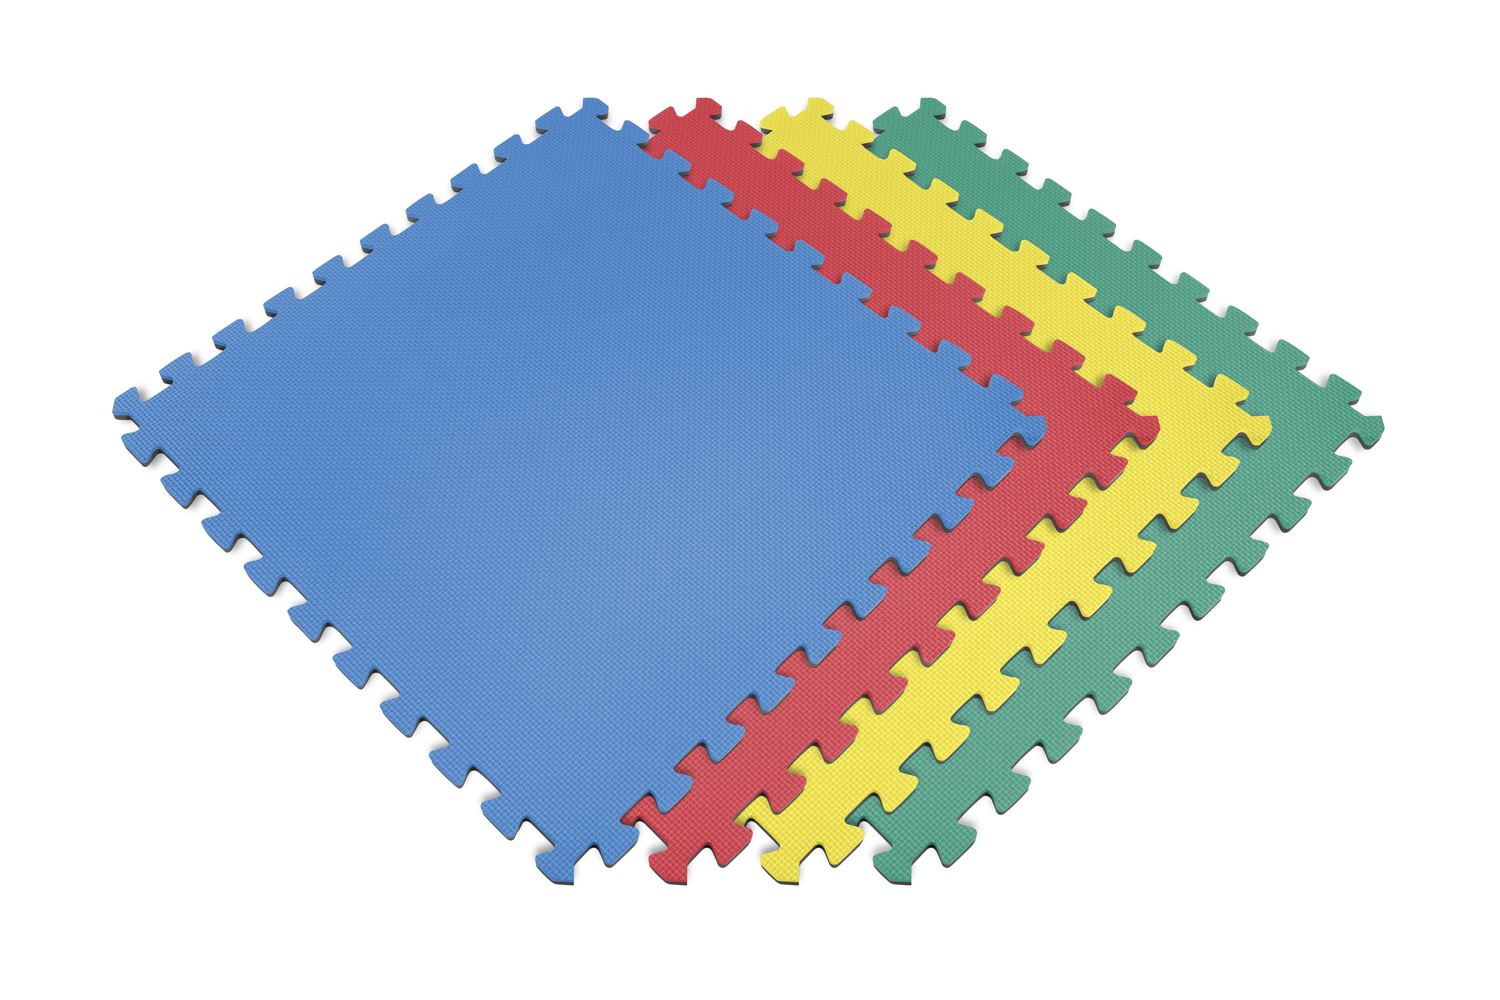 Ortho Anti-Fatigue Mats. The leading anti-fatigue mat in the business! The Ortho mats provide a one of a kind level of comfort for all standing areas.